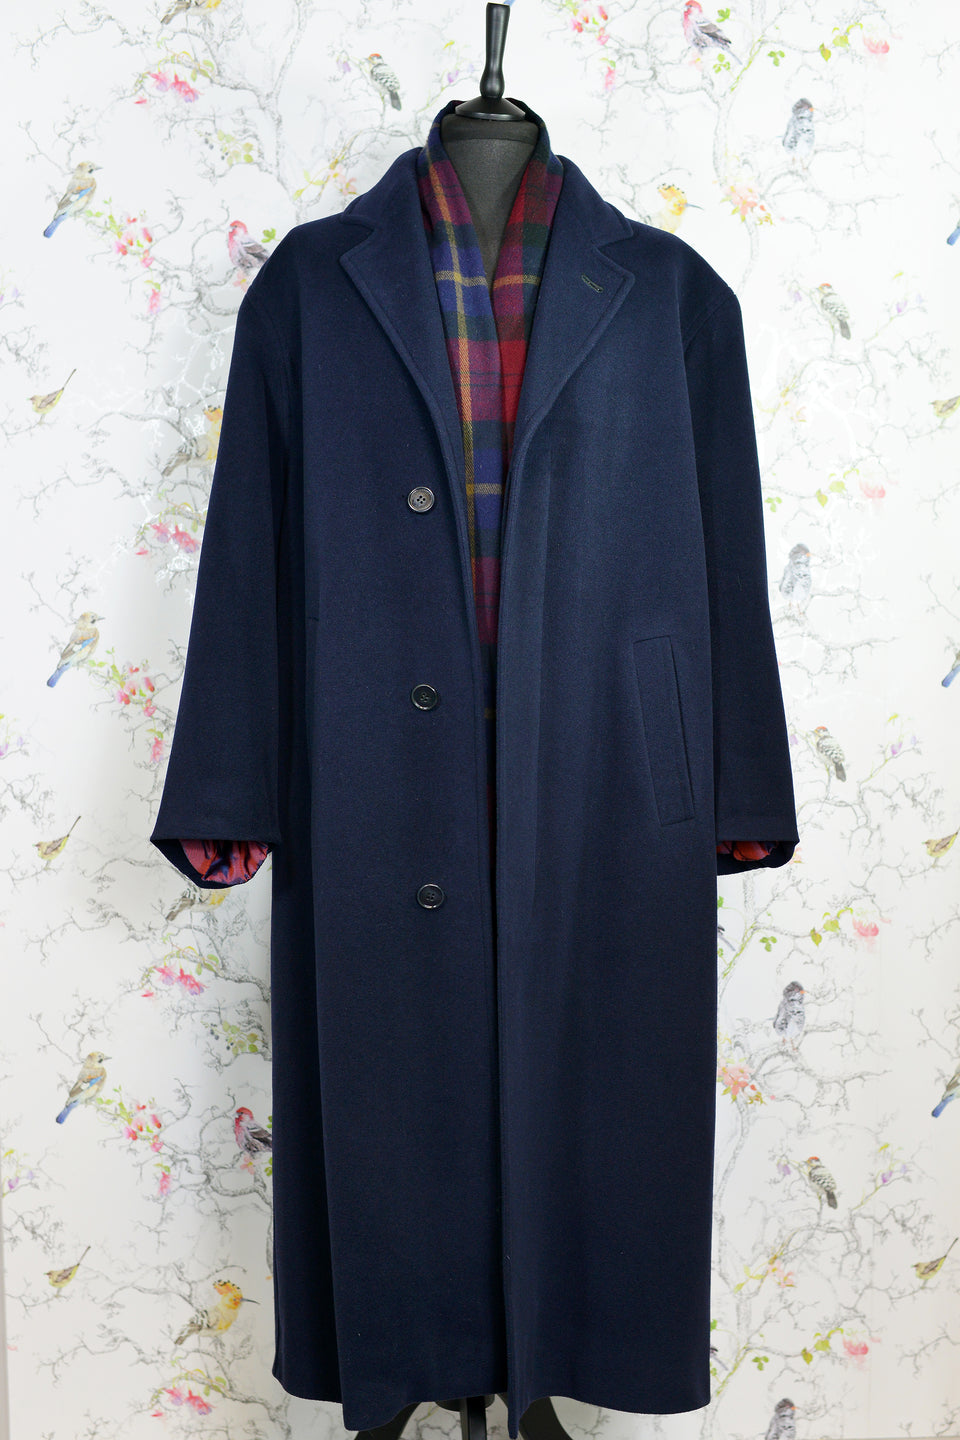 Wool and Cashmere Blend, Men's Long Navy Winter Coat, Size 40. Pre-loved.